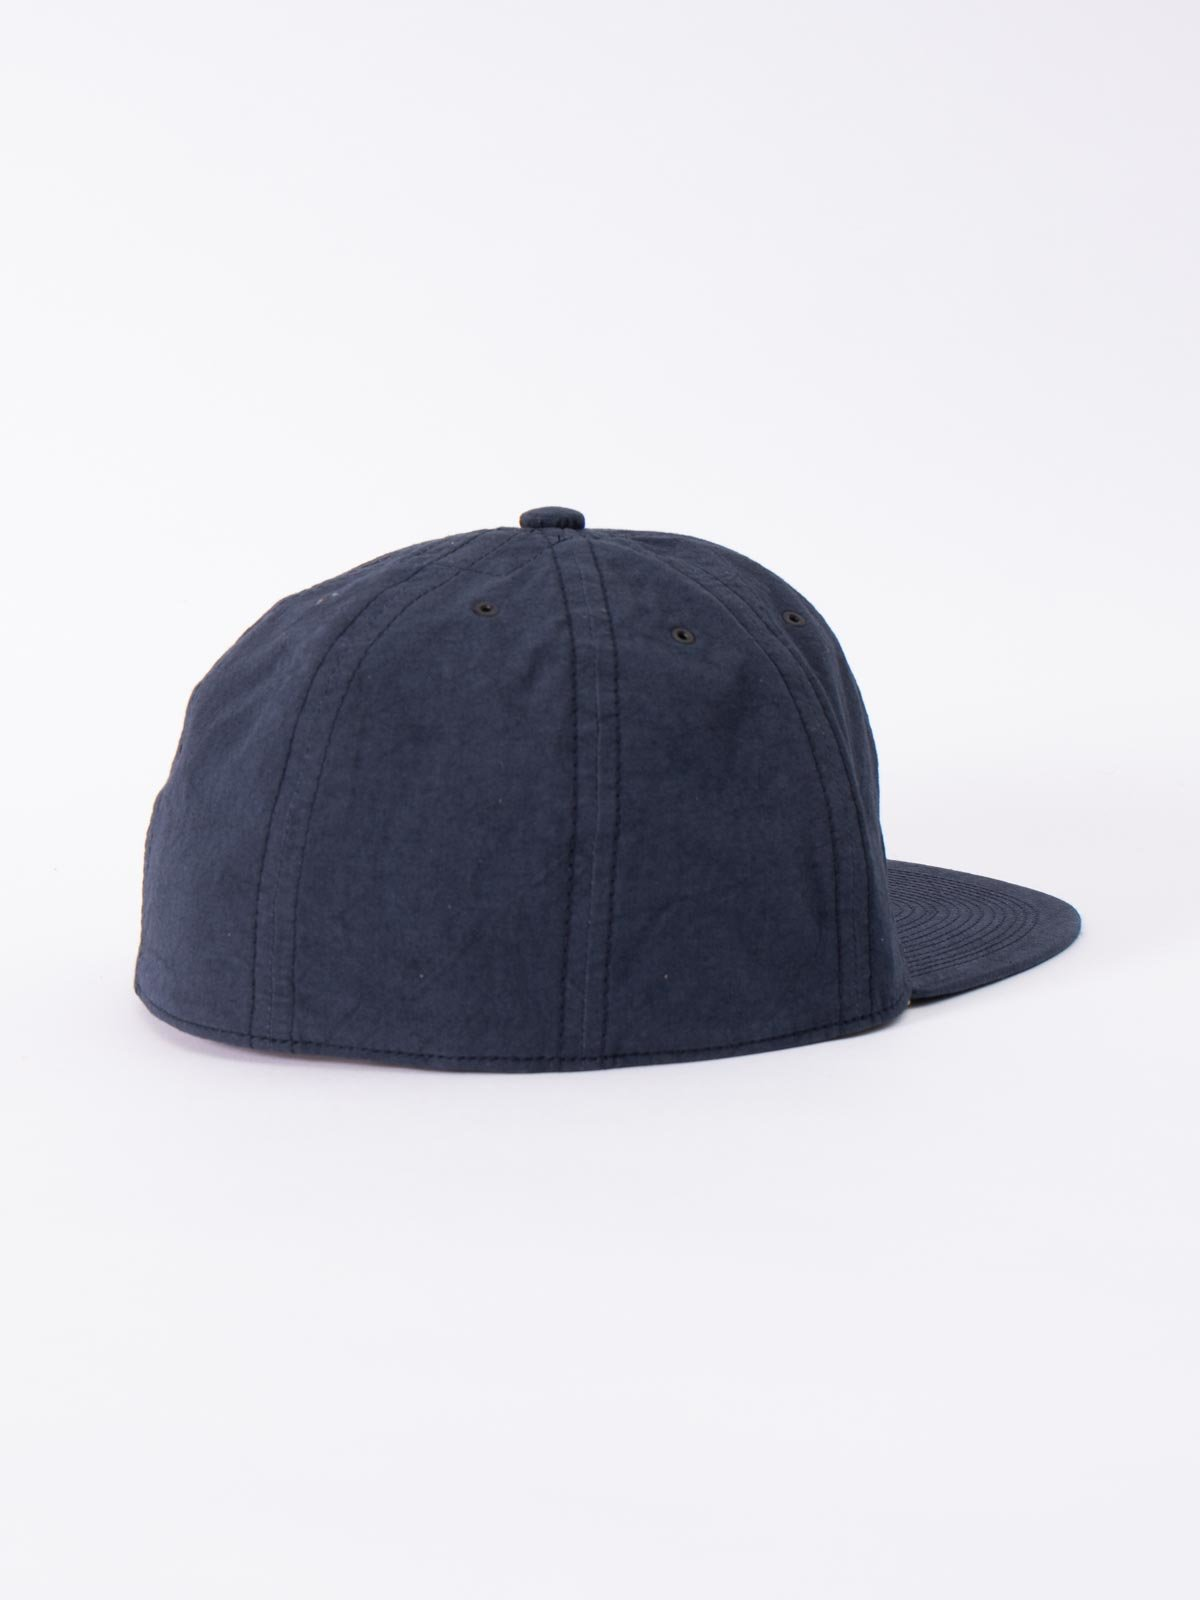 NAVY SPECIAL DYED COTTON / LINEN CAP - Image 2